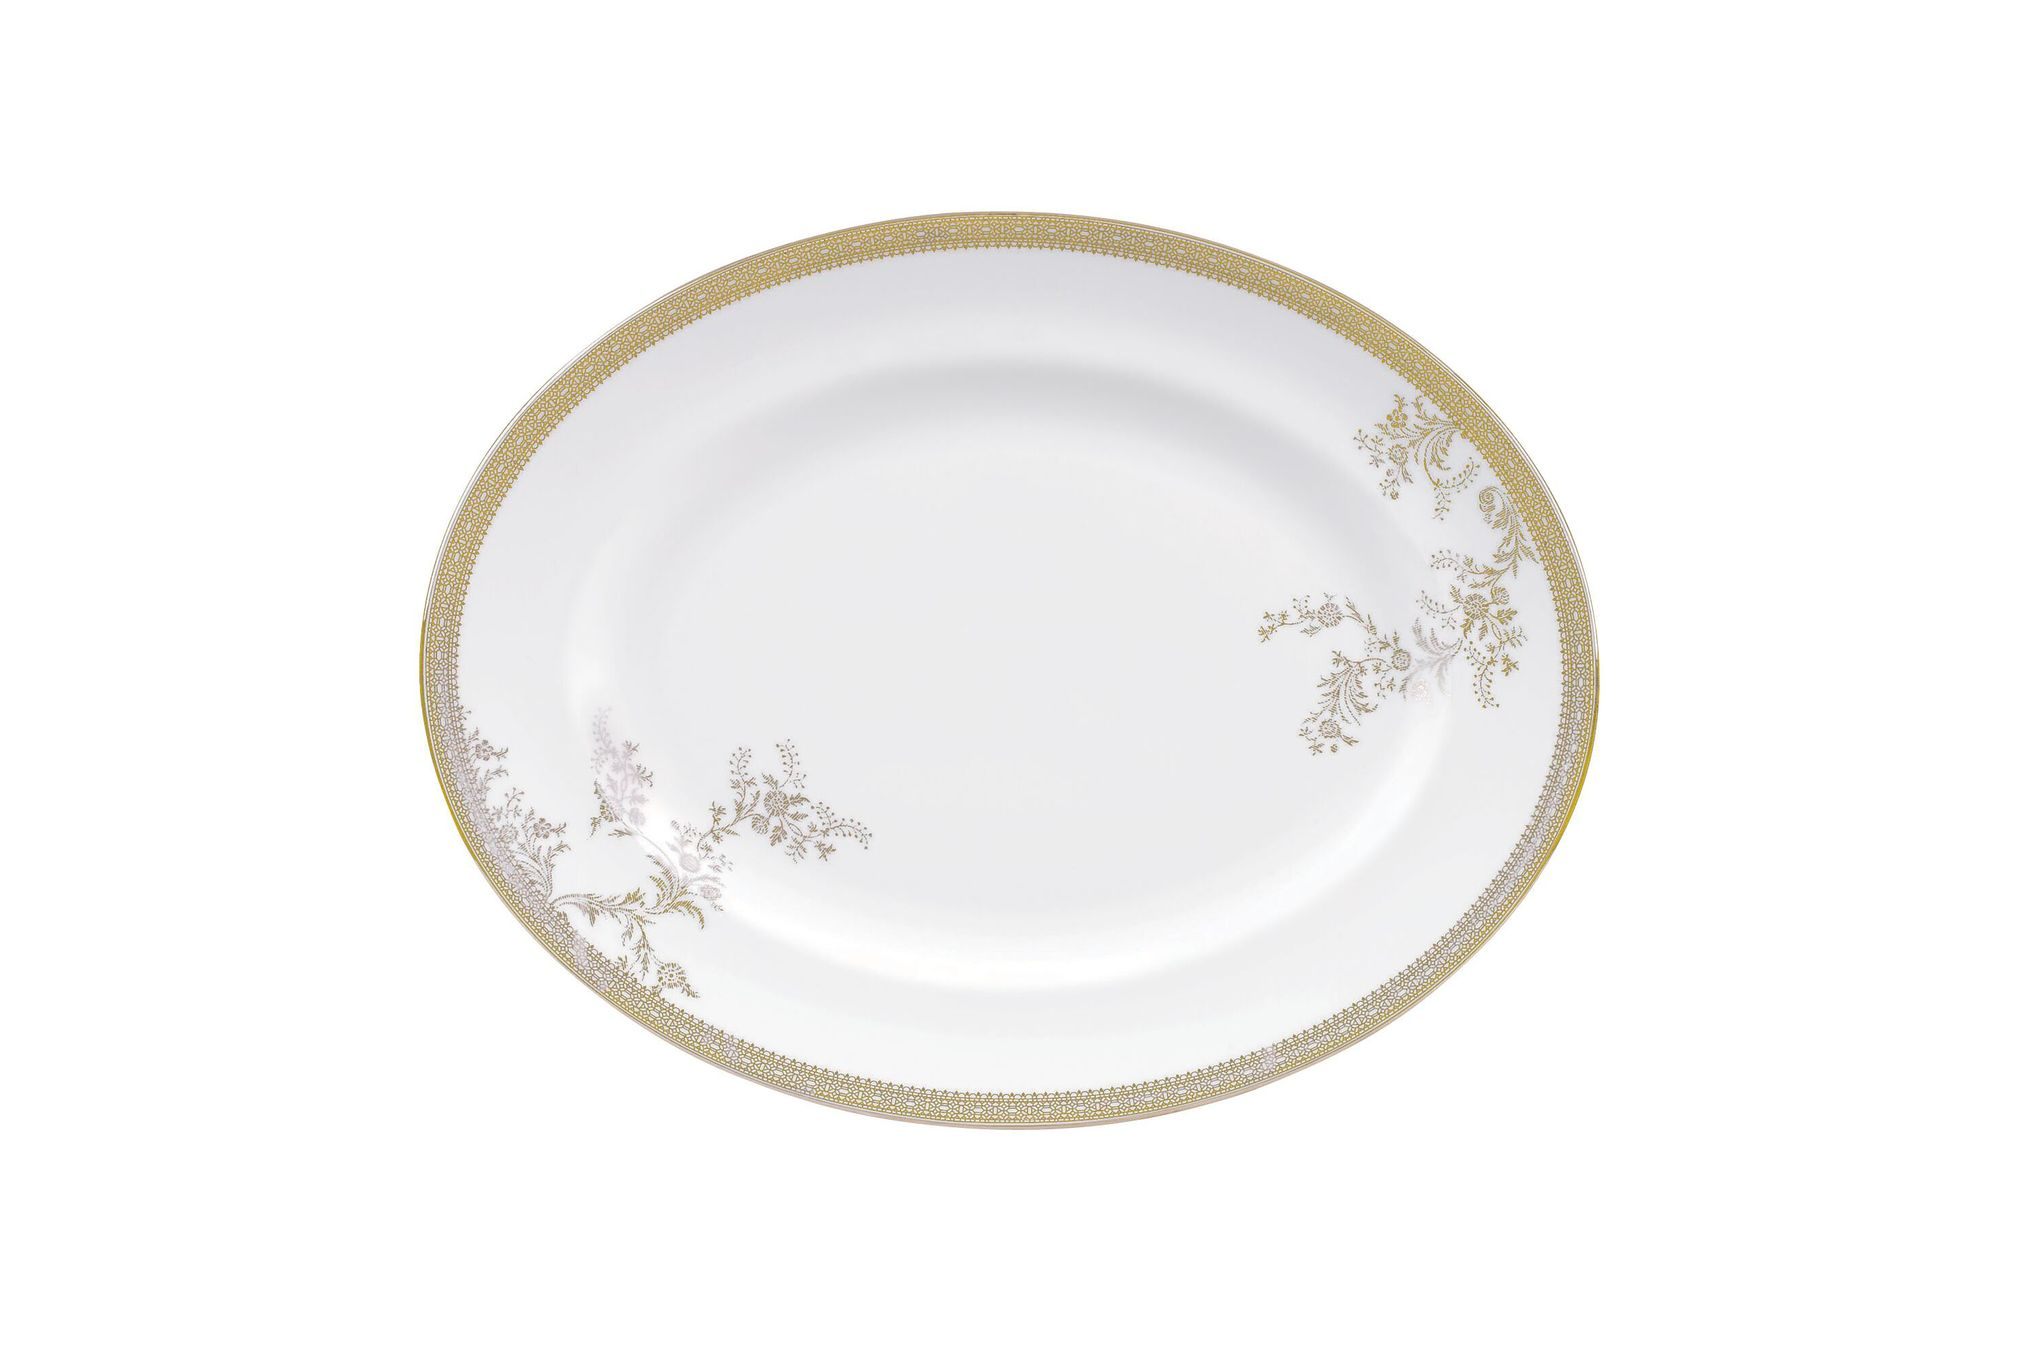 Vera Wang for Wedgwood Lace Gold Oval Plate / Platter 39cm thumb 1